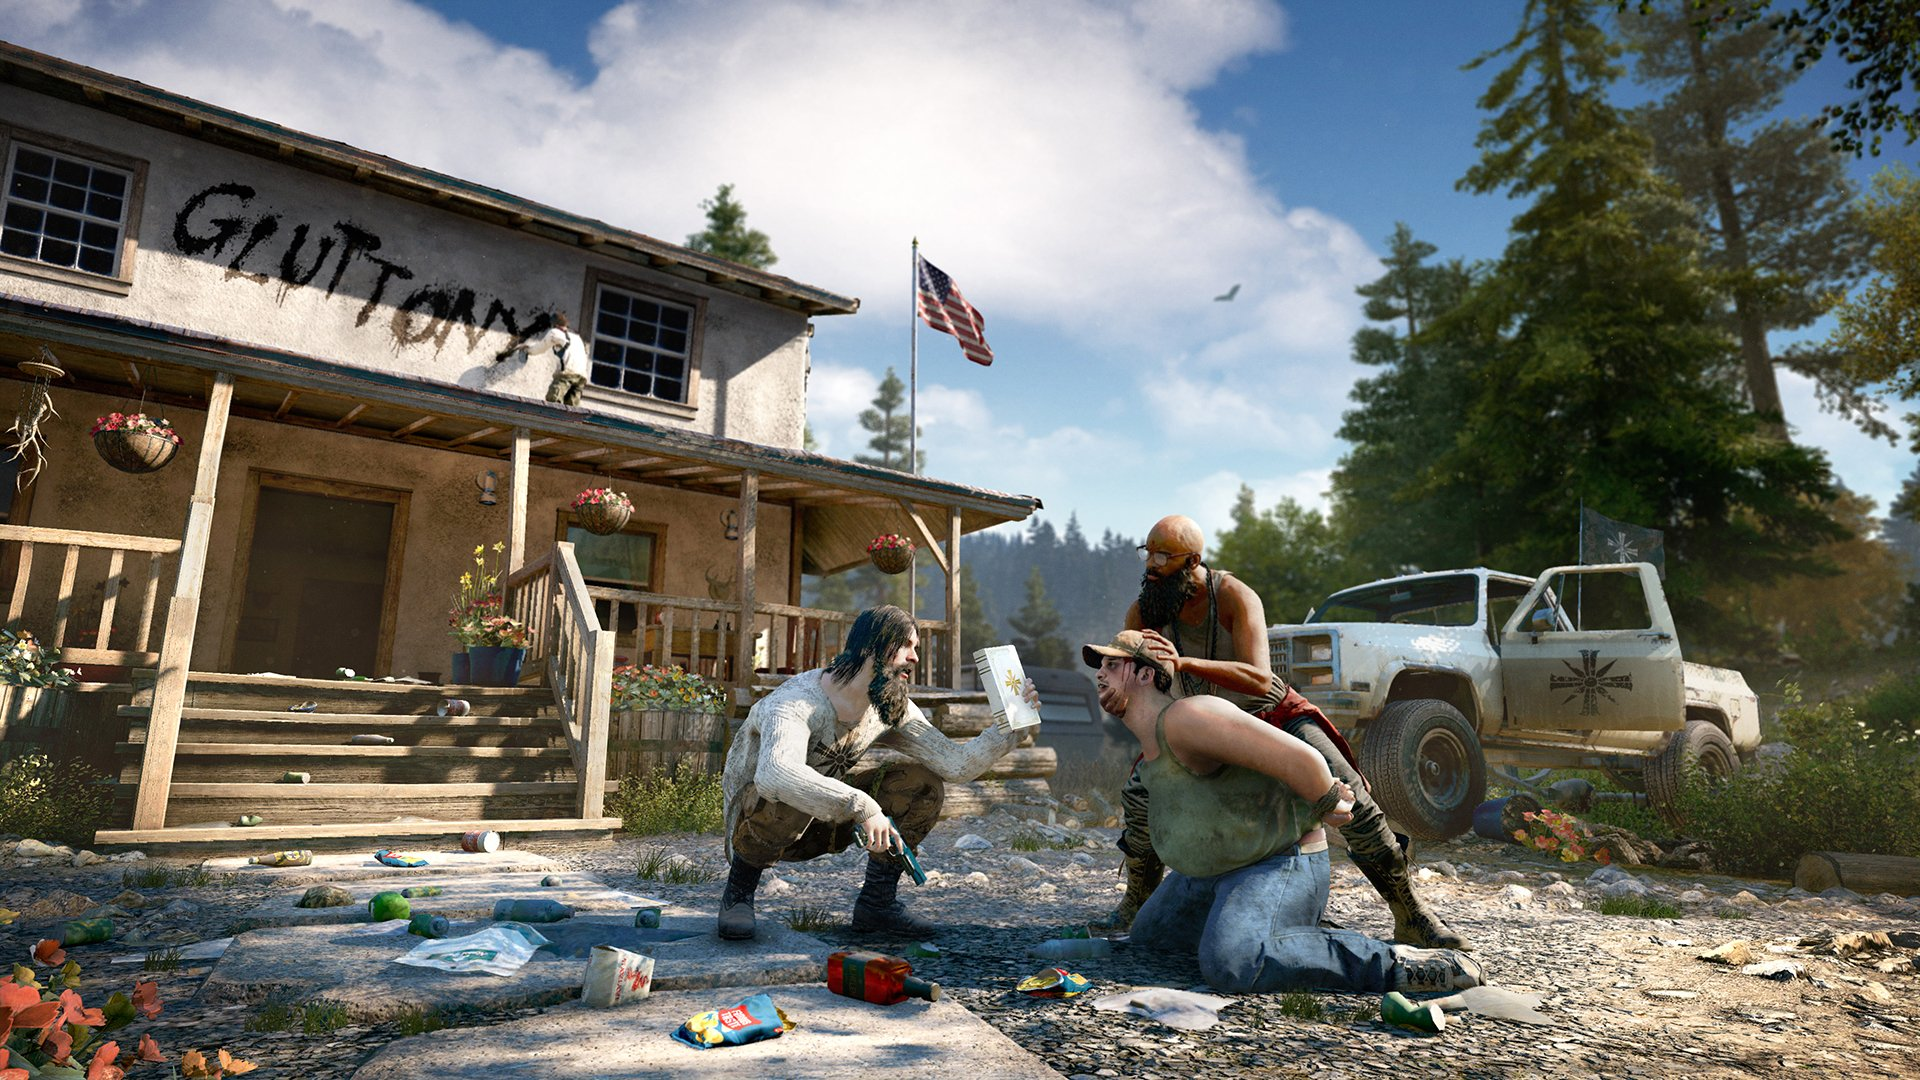 farcry 5 steam never sent activation key